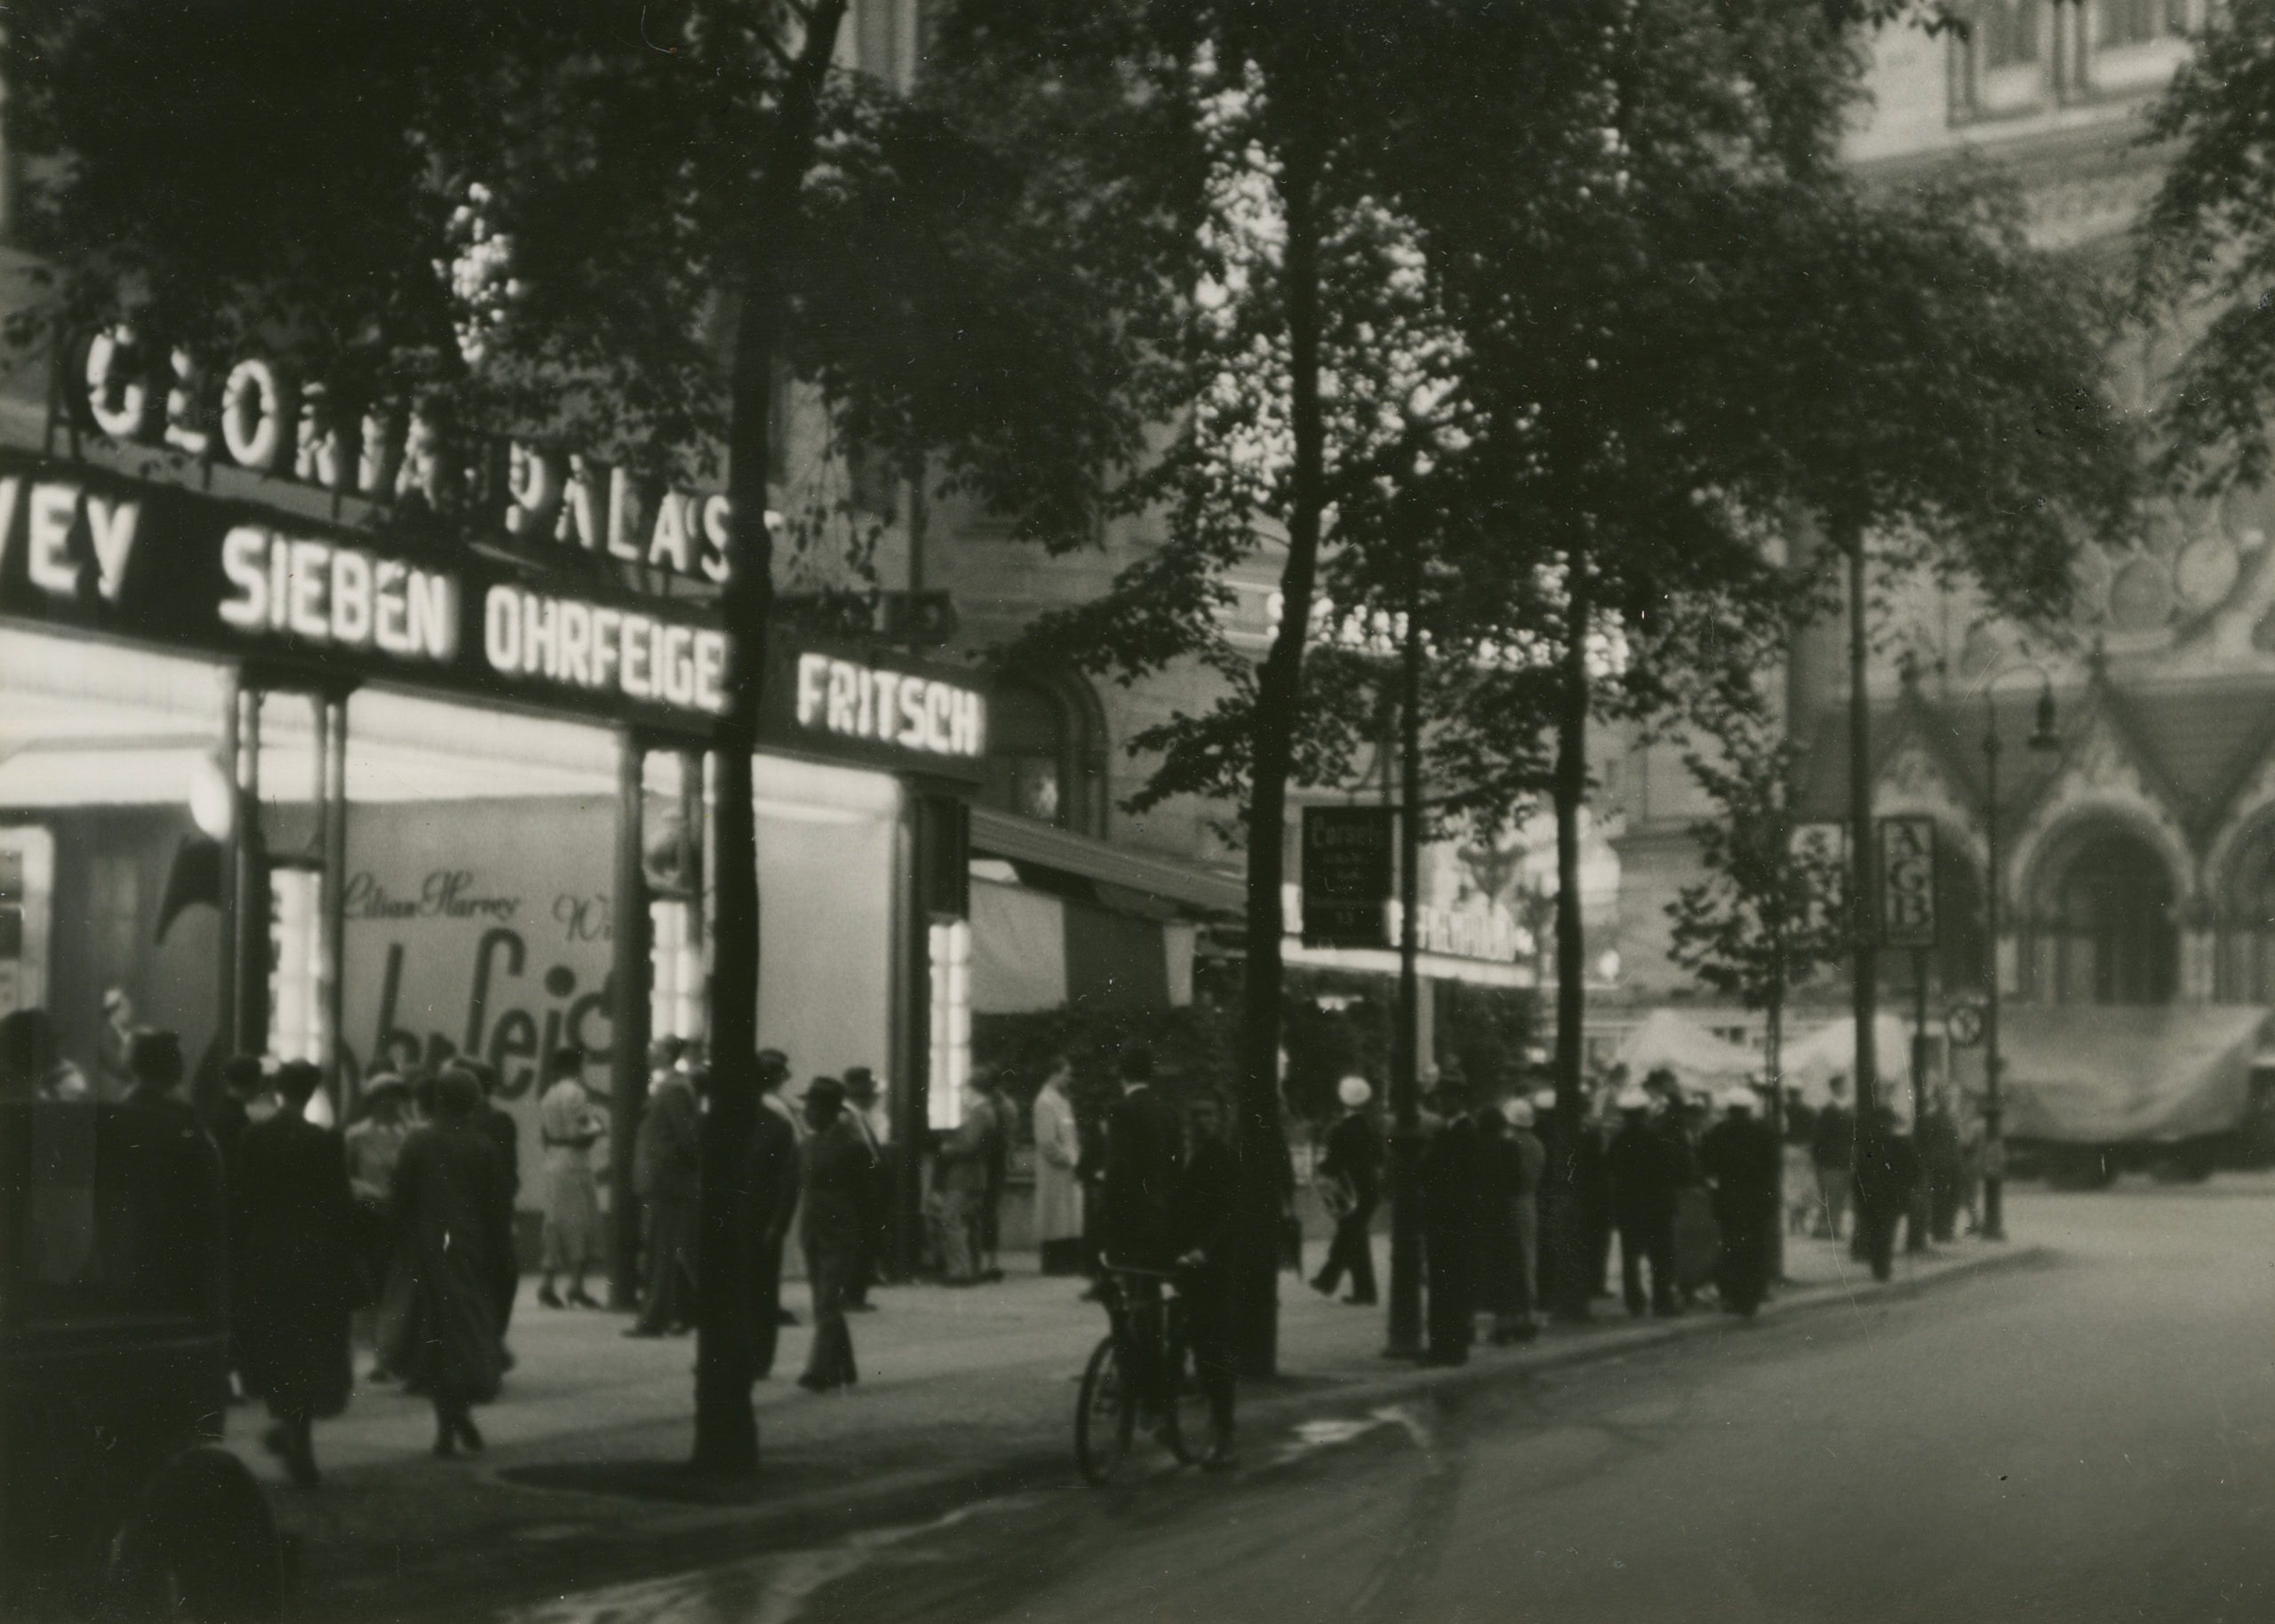 Black and white photo: cinema with illuminated advertisements and people queuing to go inside